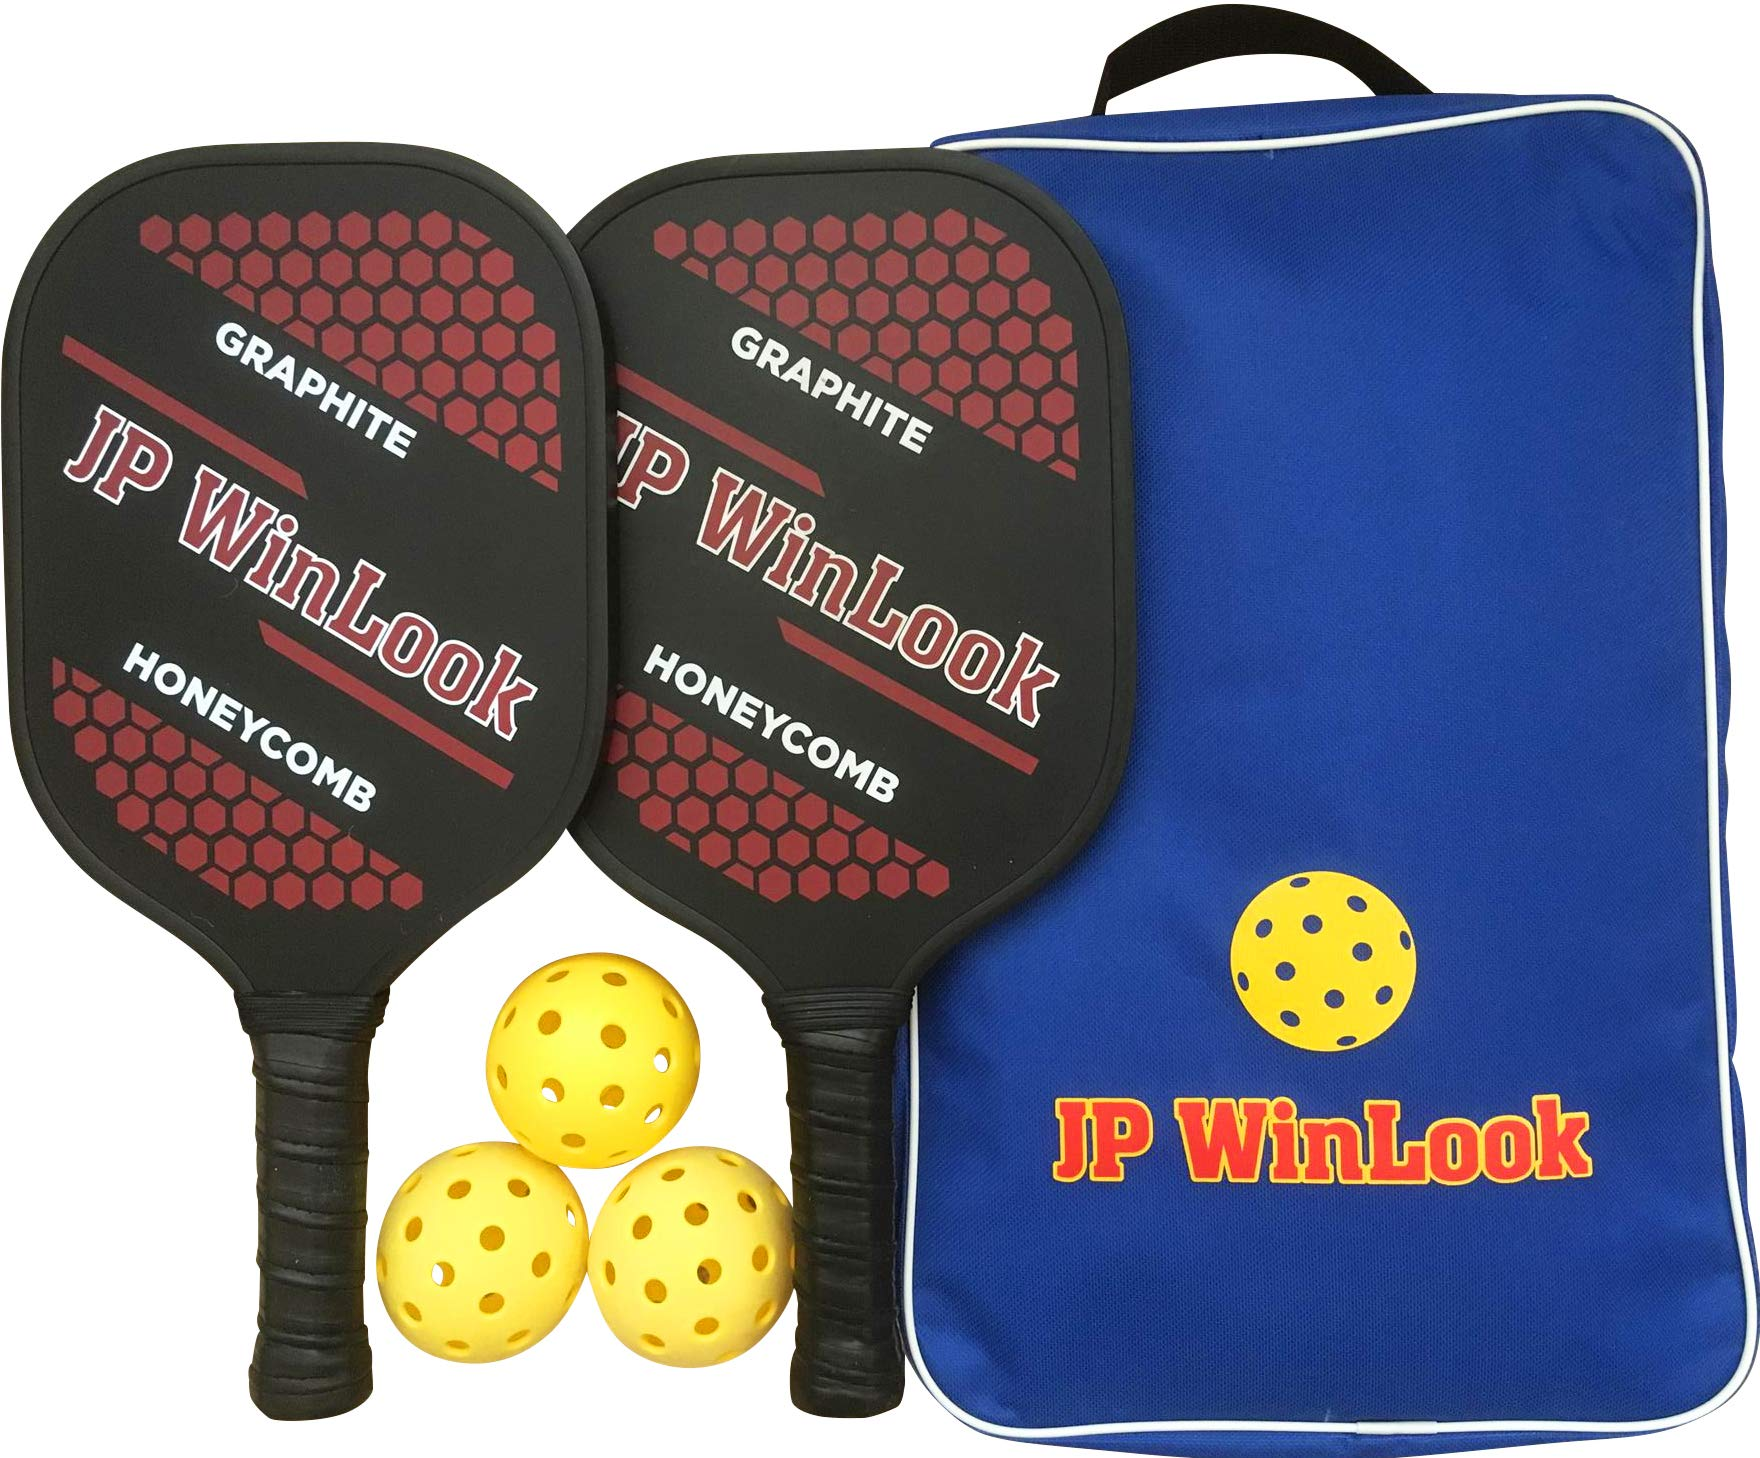 JP WinLook Pickleball Paddle Set - 2 Premium Graphite Rackets Honeycomb Composite Core 3 Balls, Ultra Cushion Grip, Portable Racquet Cover Case Bag Accessories Gift Kit, Men Women Kids Indoor Outdoor by JP WinLook